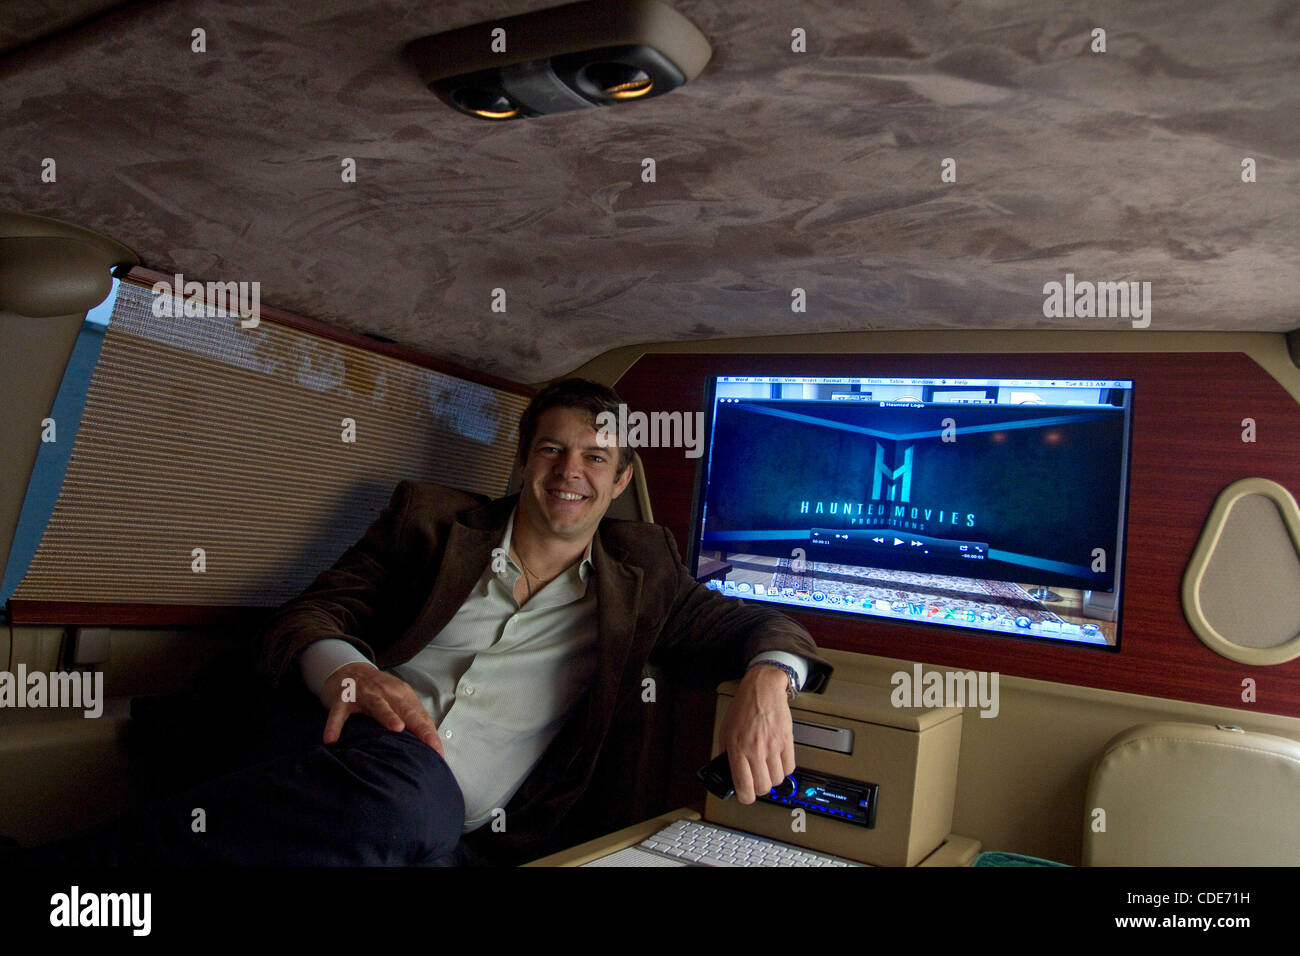 Tricked Out Stock Photos & Tricked Out Stock Images - Alamy